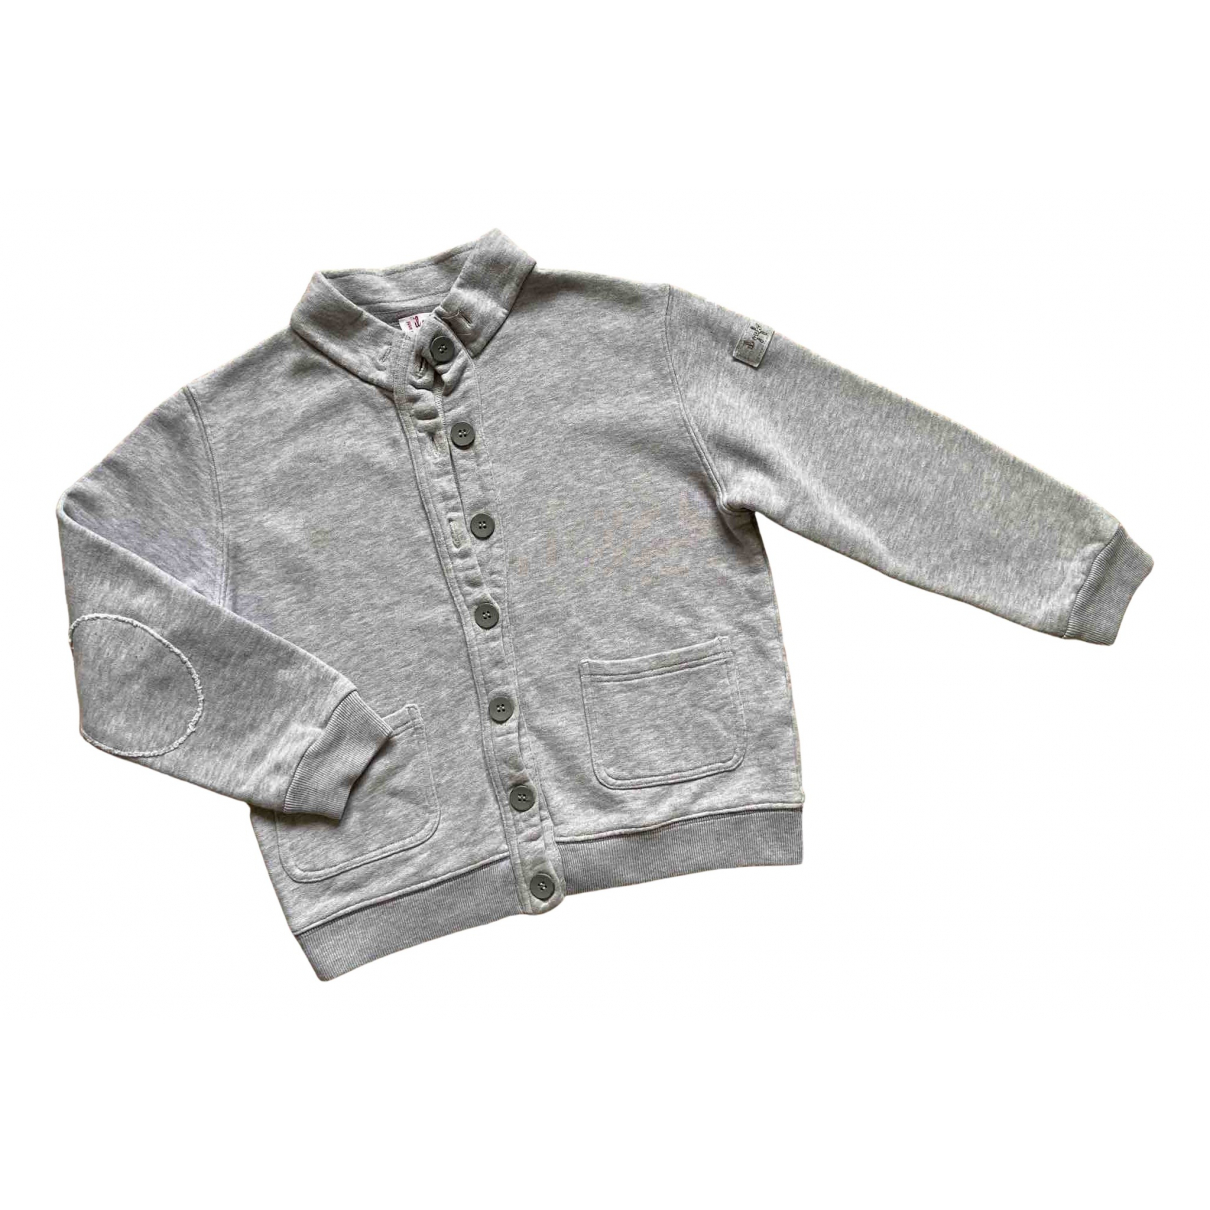 Il Gufo N Grey Cotton Knitwear for Kids 8 years - up to 128cm FR